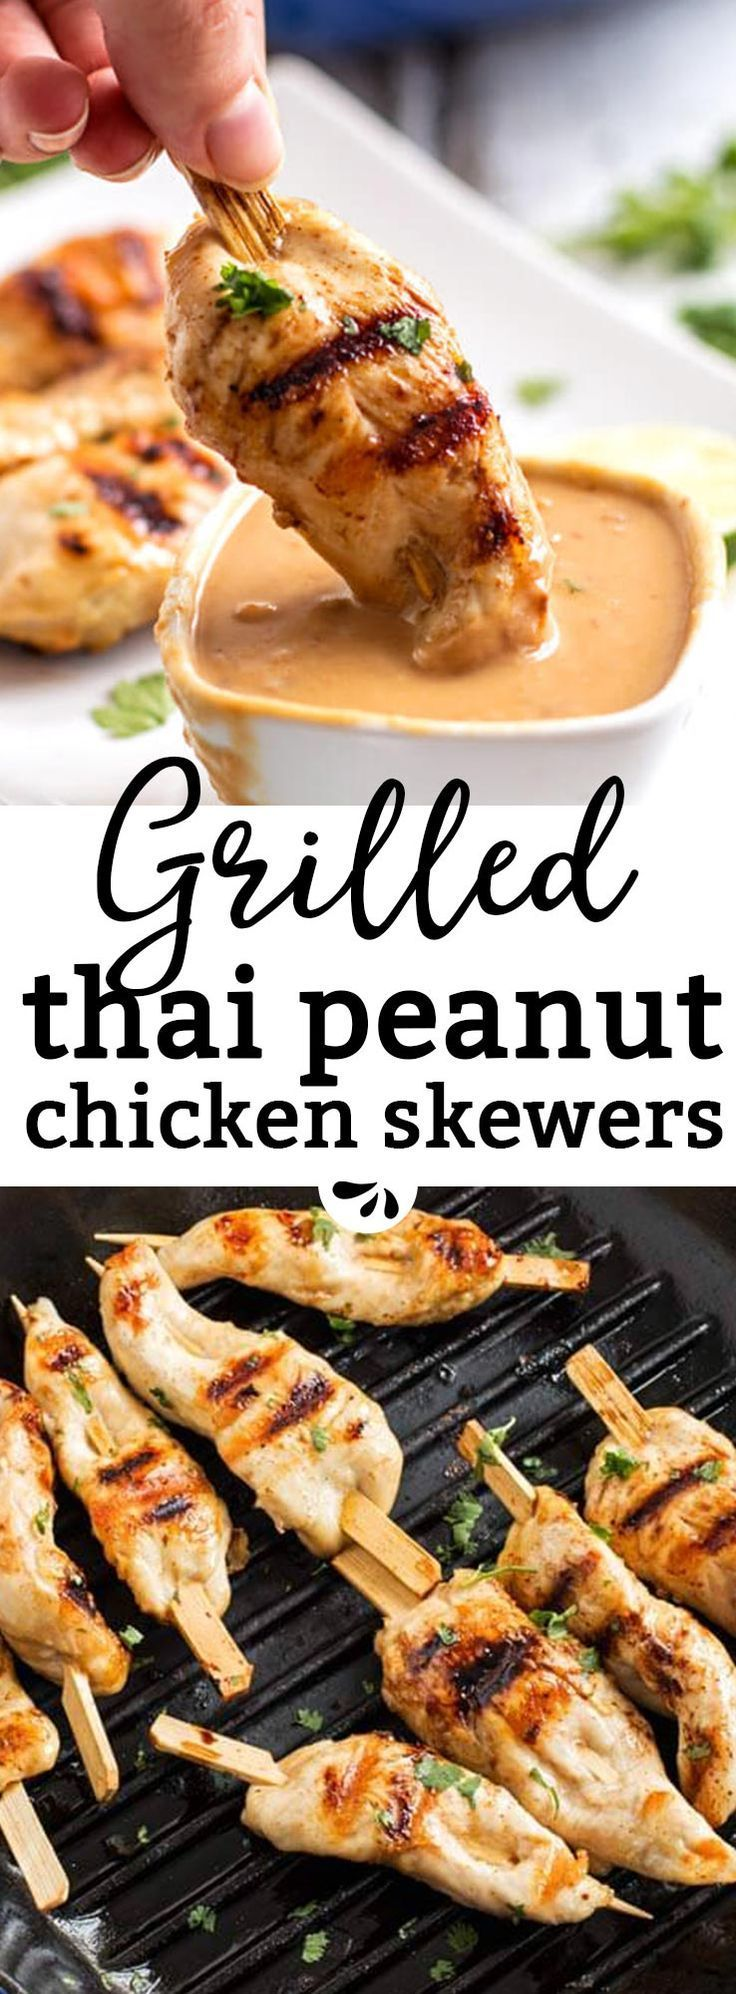 Are you looking for an easy grilled chicken recipe? These grilled chicken skewers with Thai peanut sauce are an incredible satay-inspired idea! Serve them as part of a BBQ potluck or summer picnic. Th